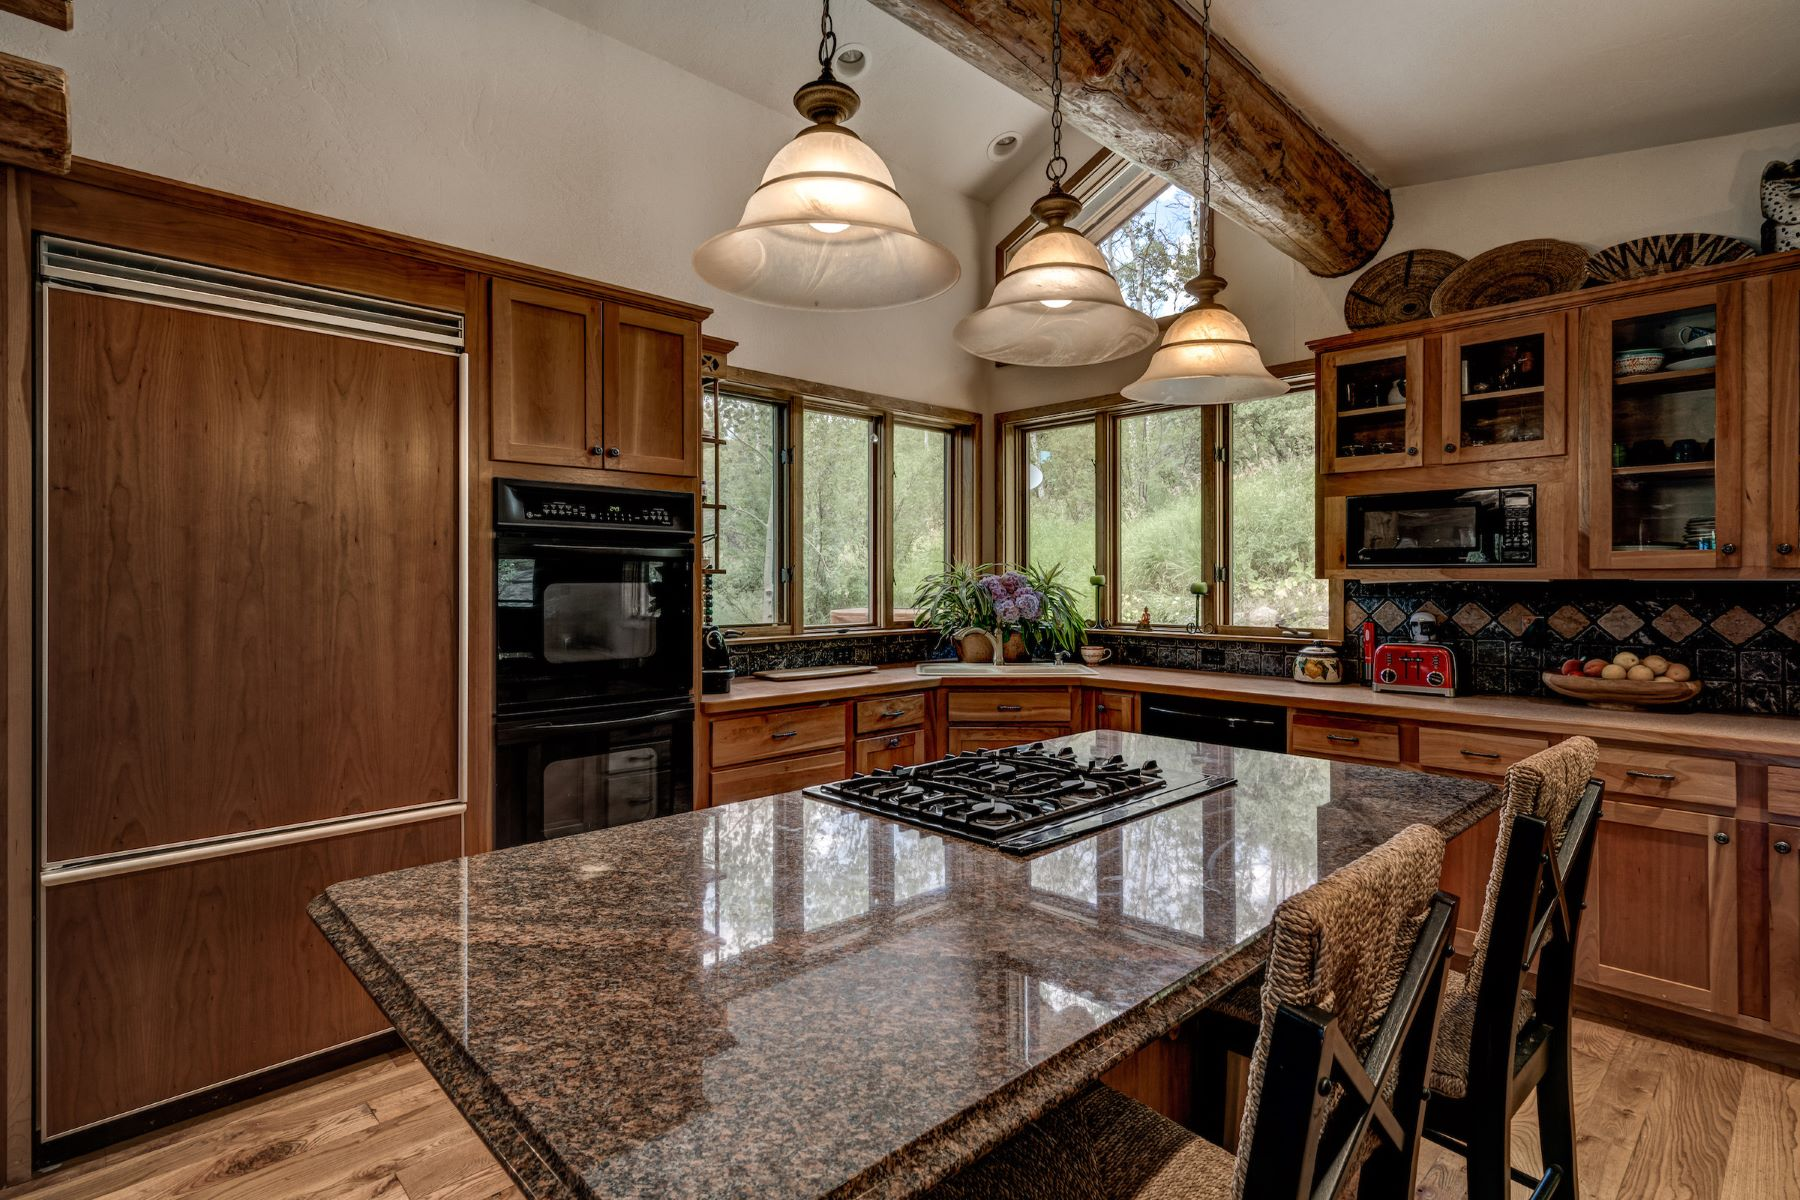 Additional photo for property listing at Whitewood Log Home 27875 Whitewood Dr E Steamboat Springs, Colorado 80487 United States